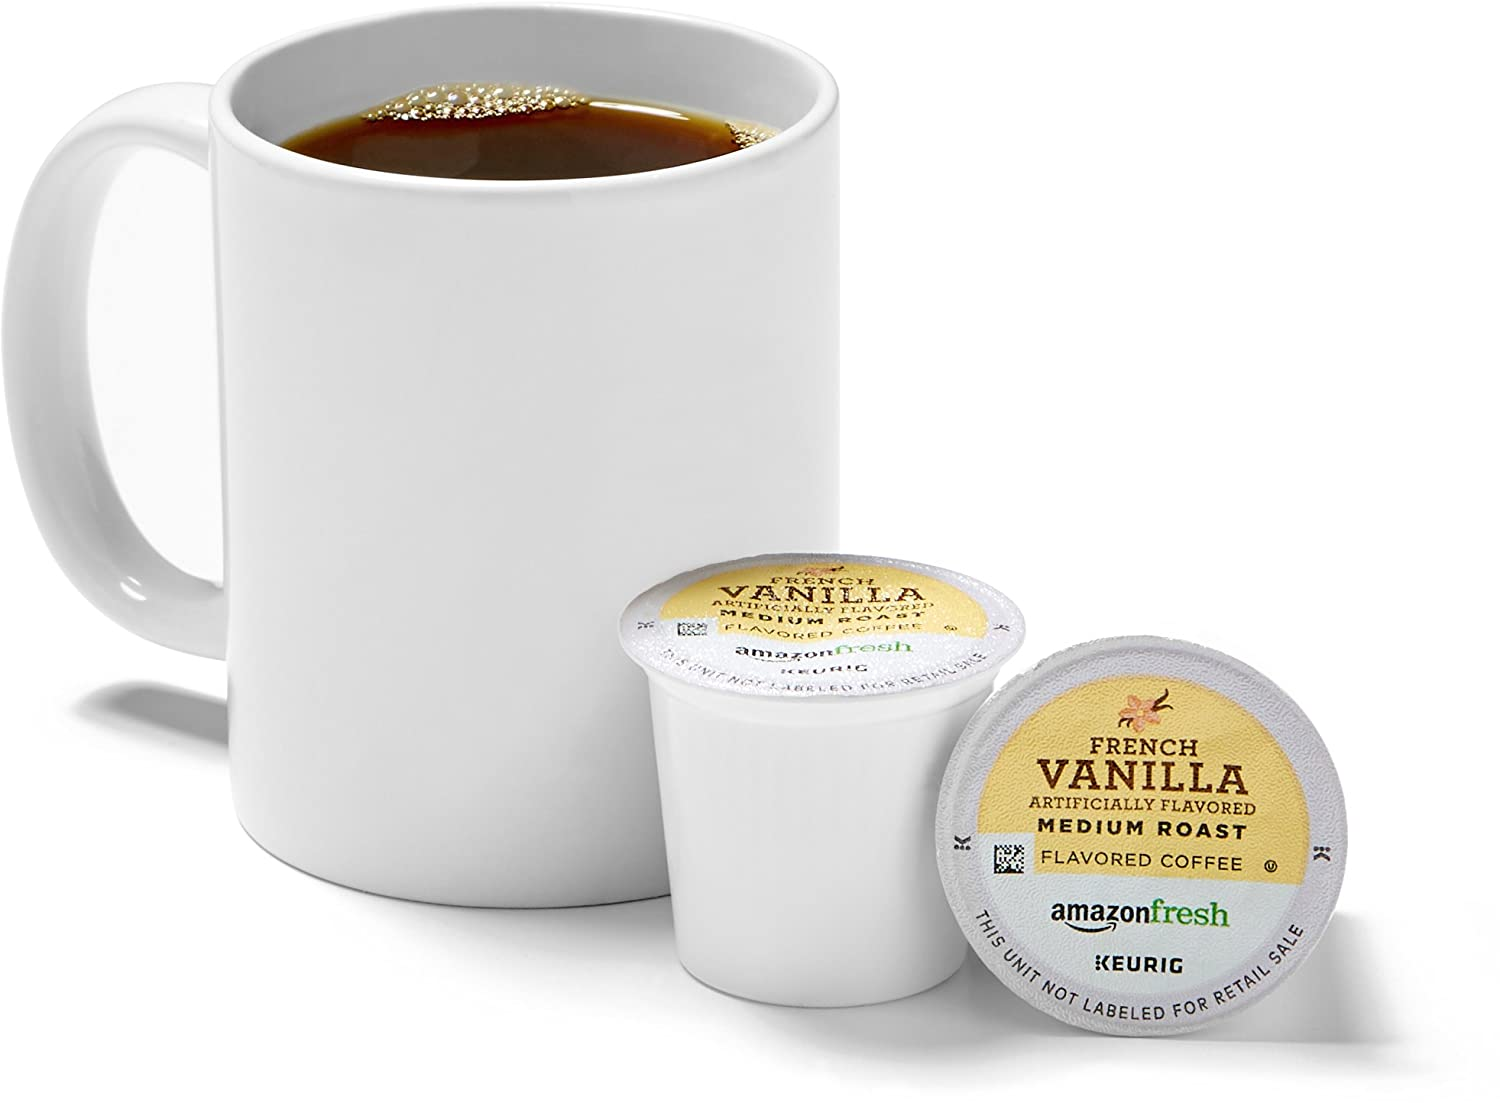 AmazonFresh 80 Ct. K-Cups, French Vanilla Flavored Medium Roast, Keurig K-Cup Brewer Compatible